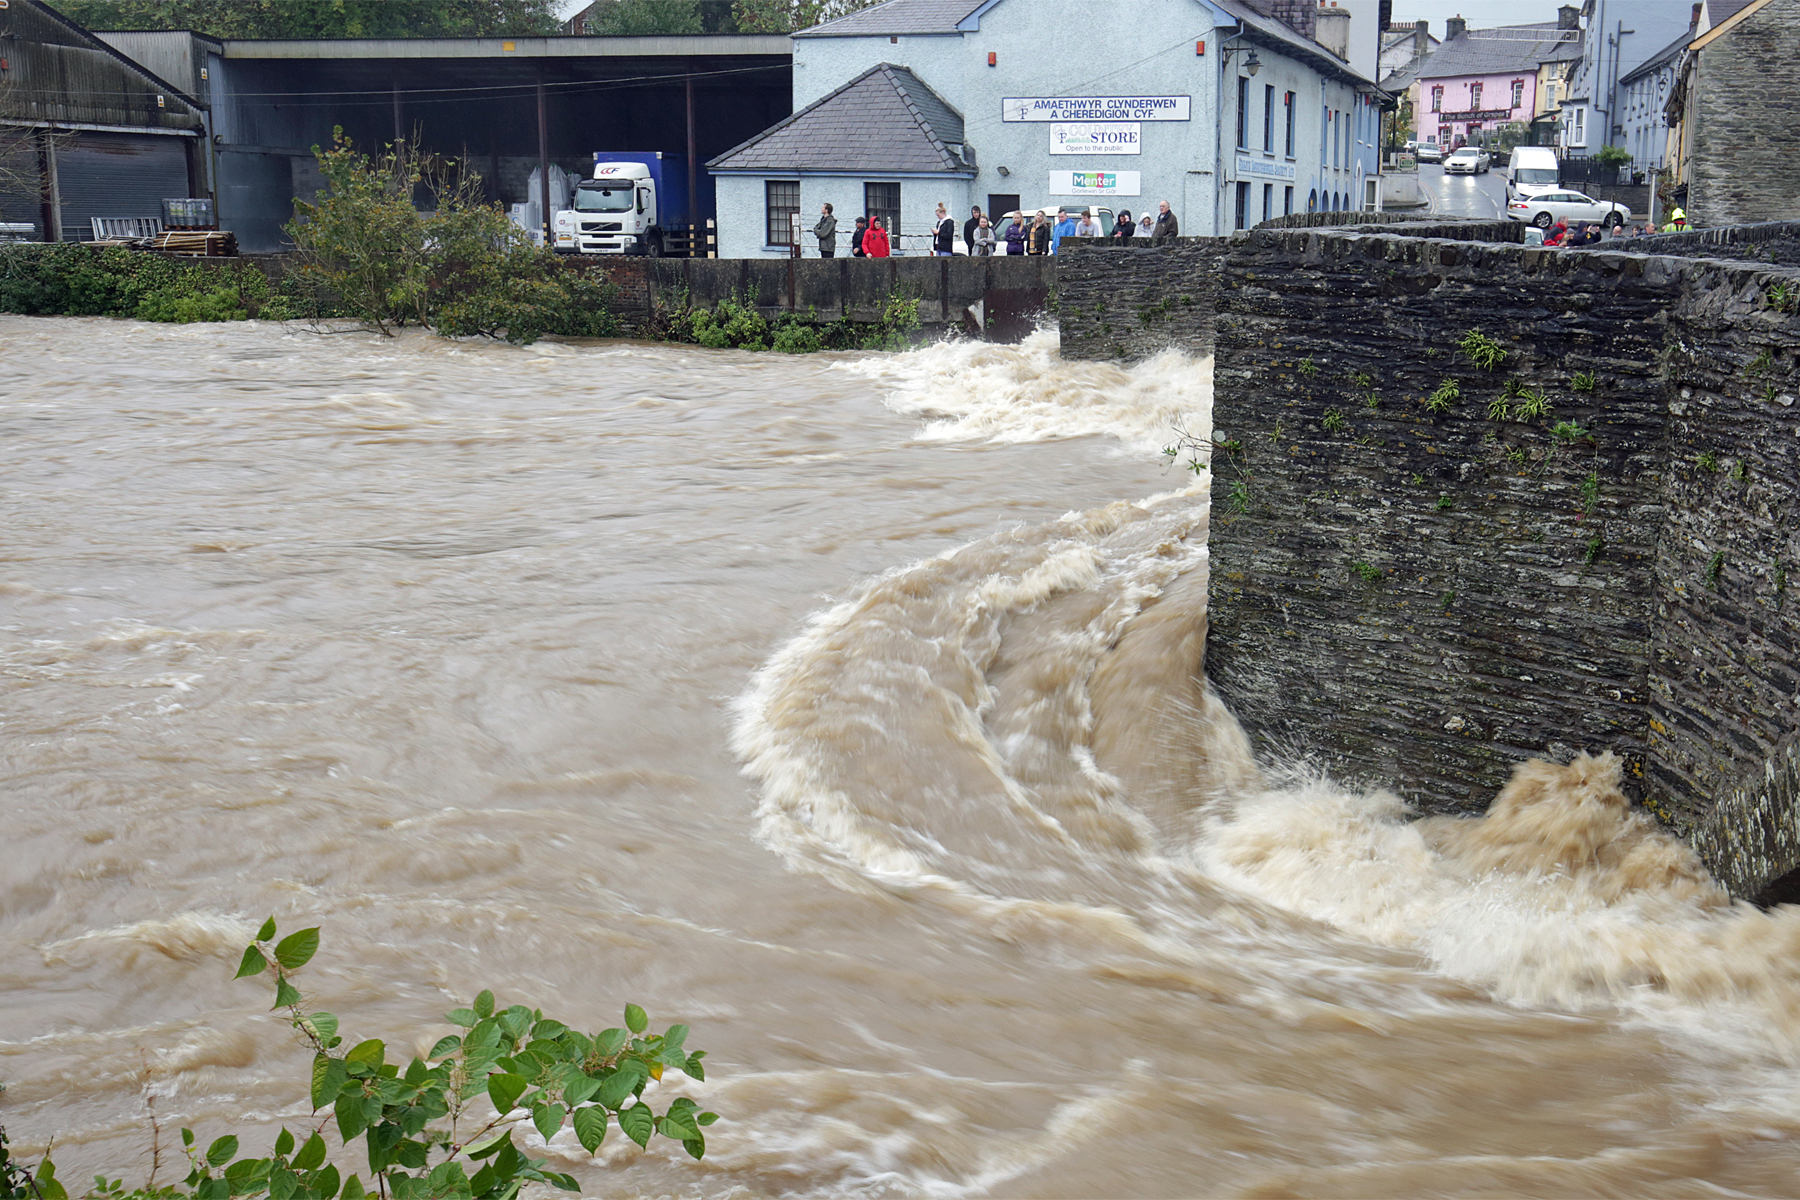 Onlookers watch as the River Teifi batters the town bridge in Newcastle Emlyn during Storm Callum. PICTURE: Barry Adams